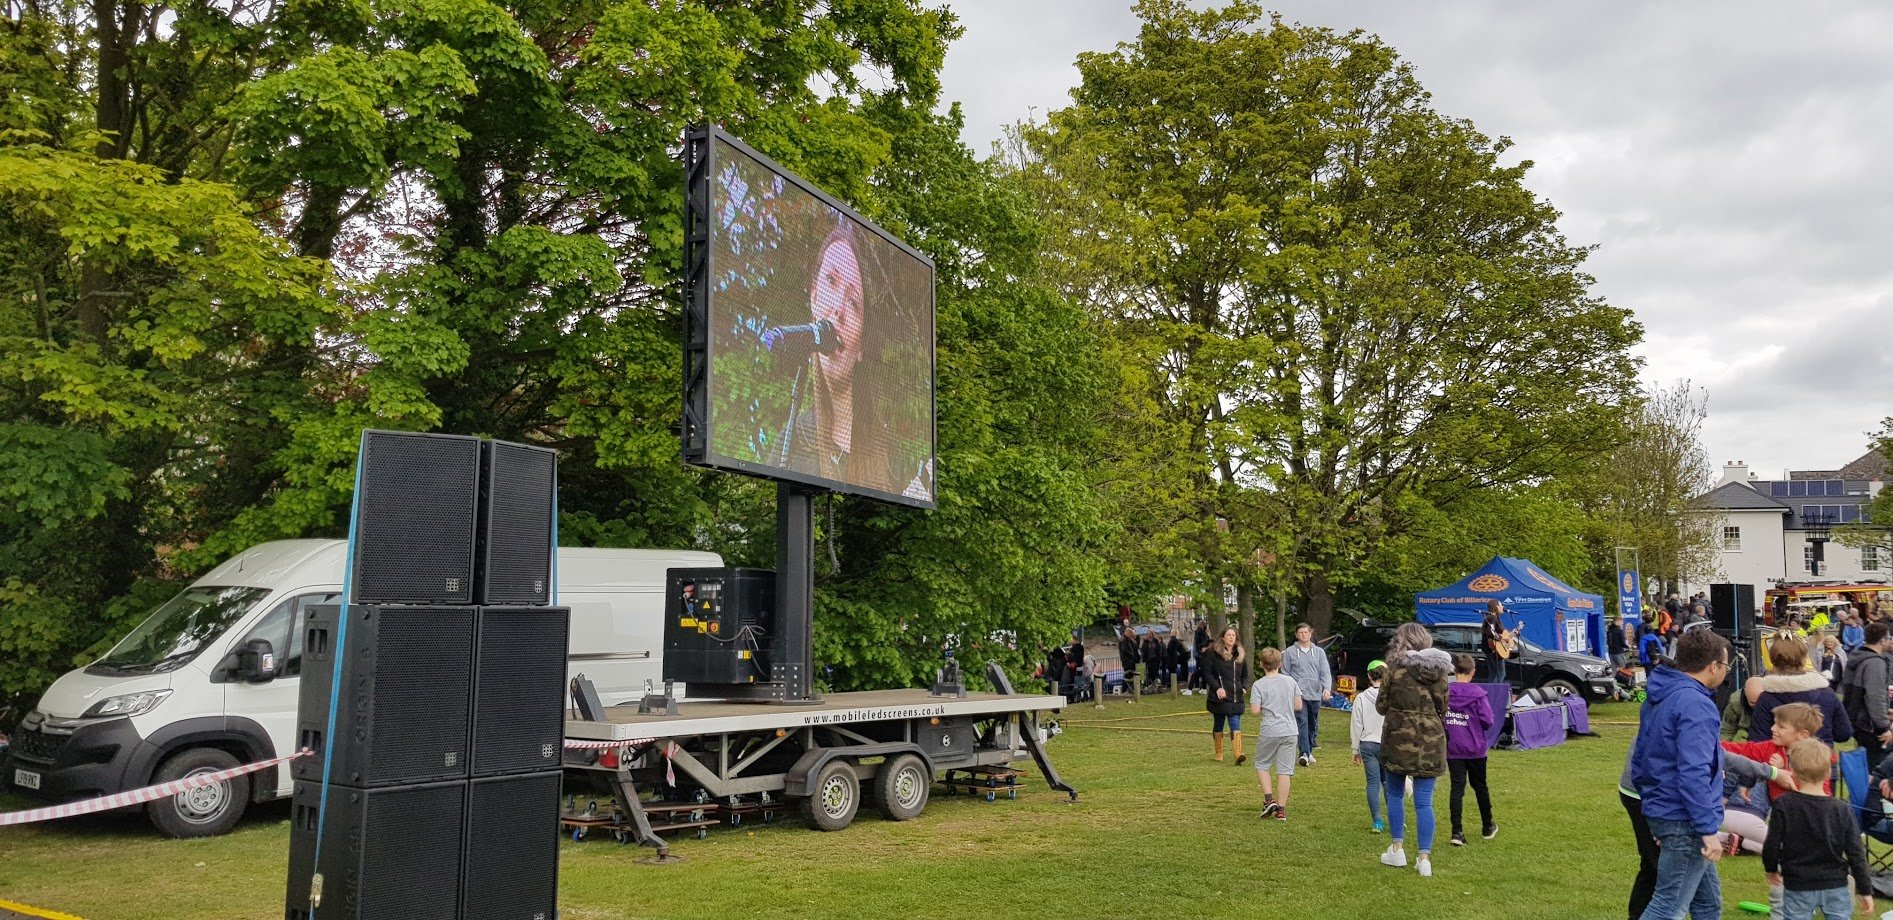 Outdoor event PA system hire